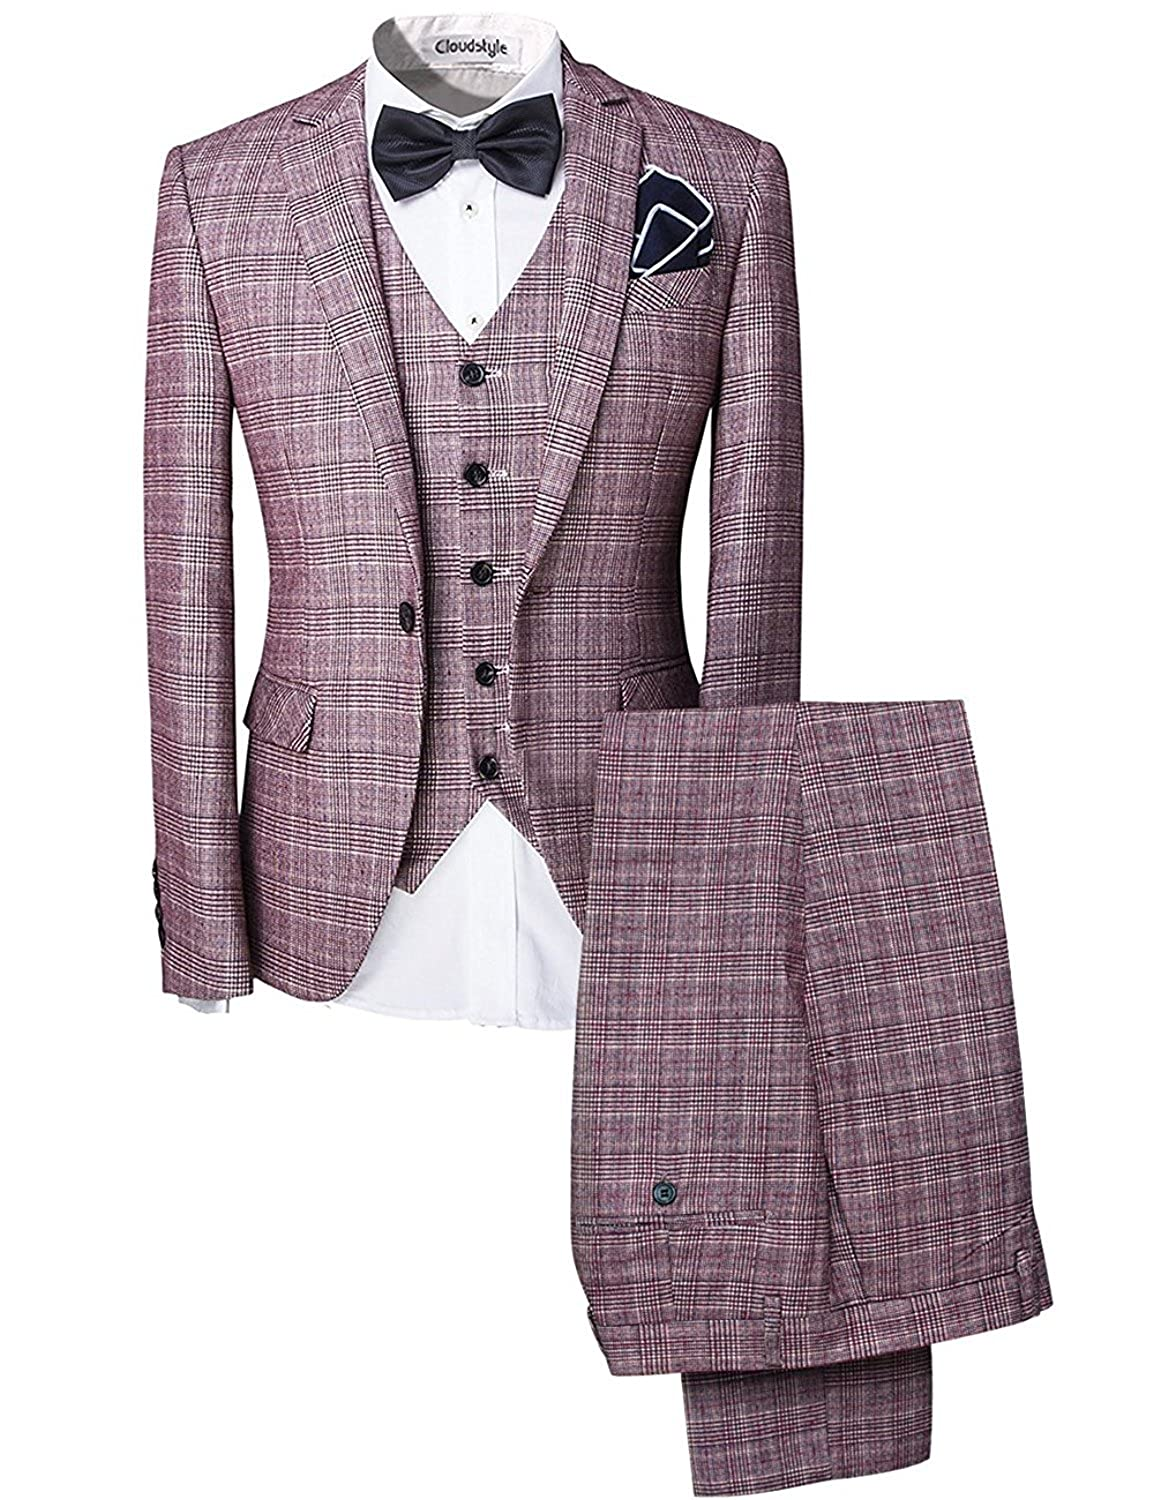 Retro Clothing for Men | Vintage Men's Fashion Cloudstyle Mens 3-Piece Suit One Button Plaid Dress Blazer Jacket & Vest & Trousers Set $95.99 AT vintagedancer.com